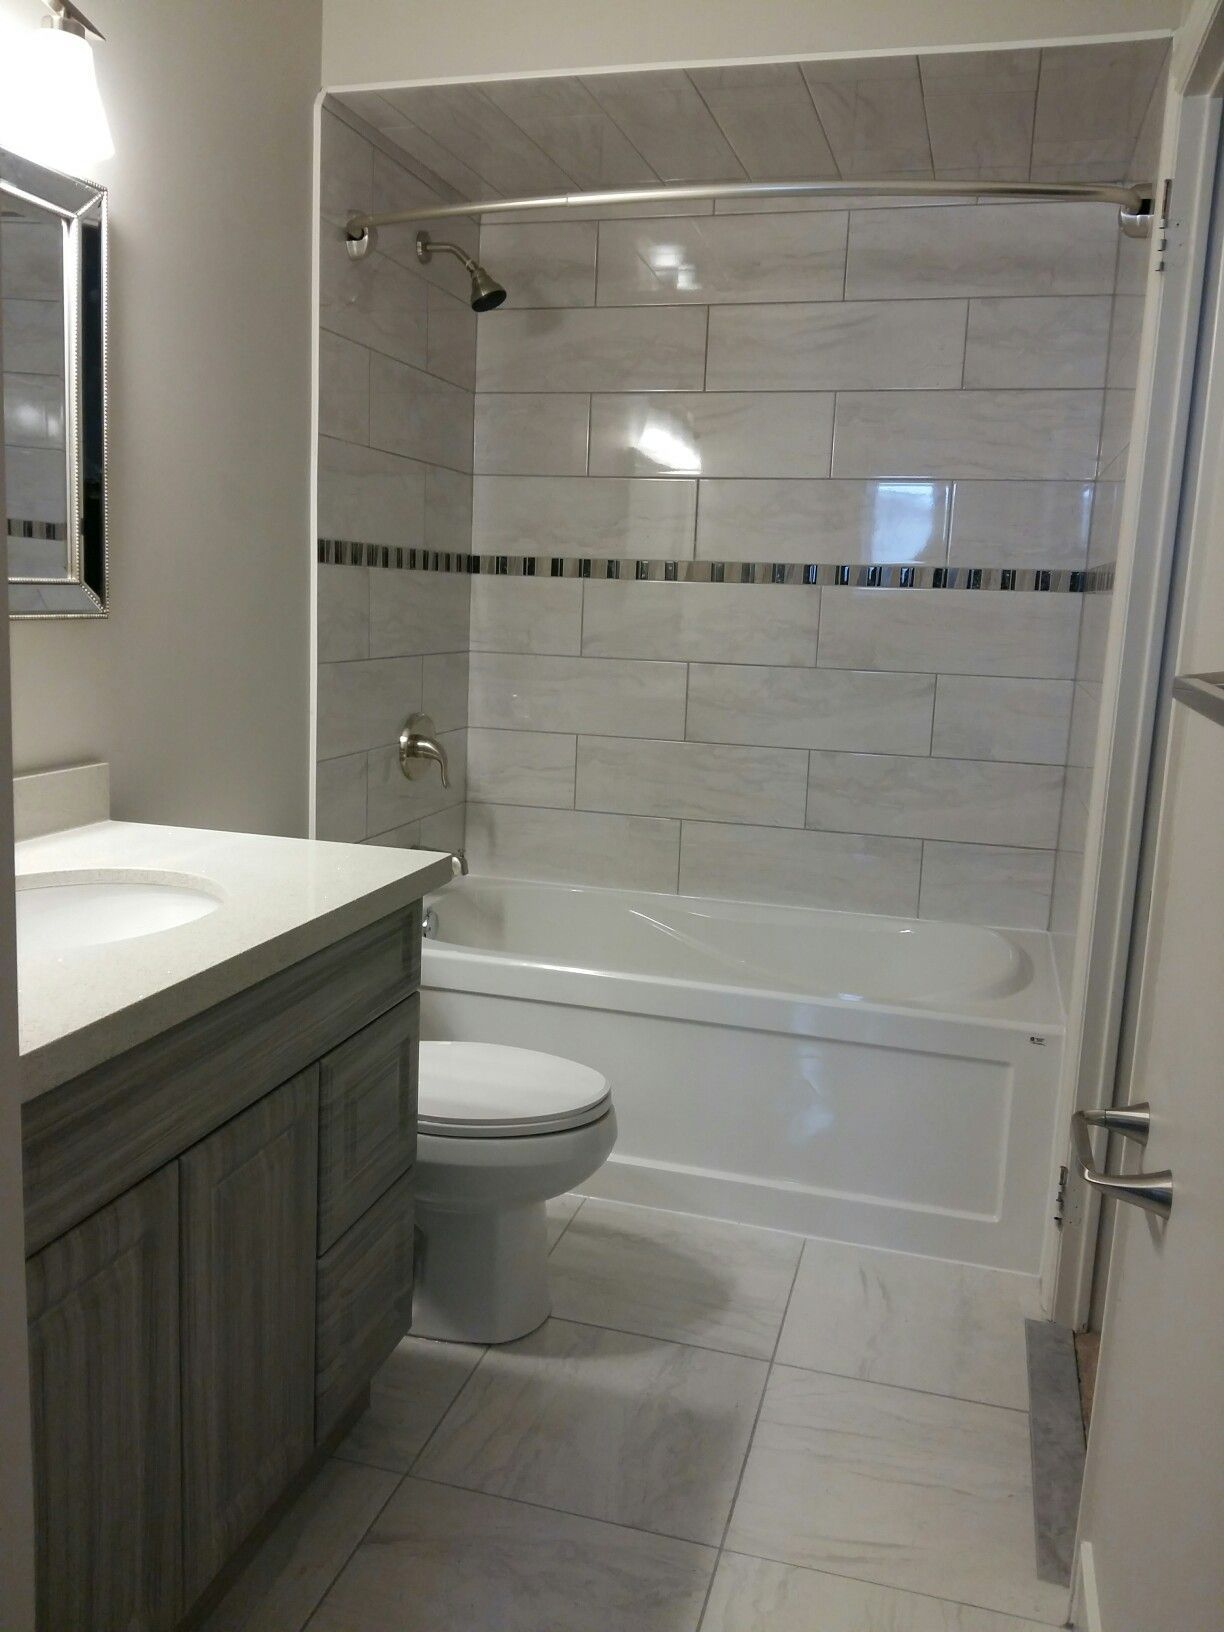 Bathroom Renovation By Central Home Improvements